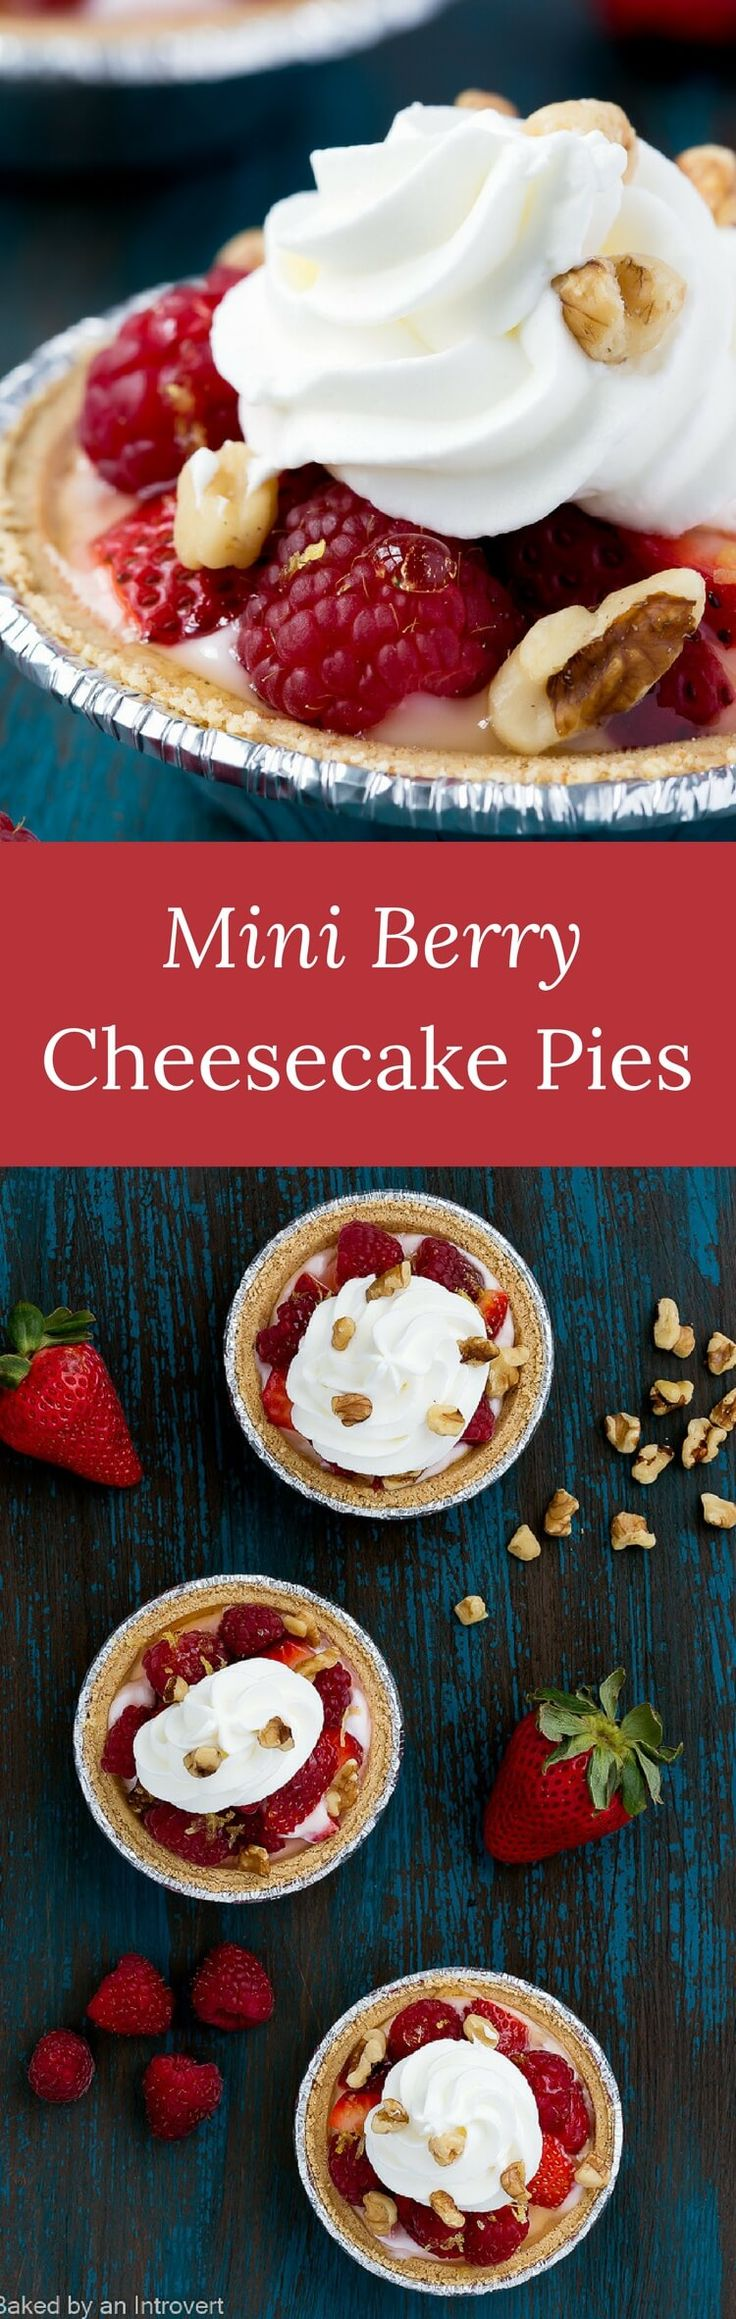 Simple and quick to put together, Mini Berry Cheesecake Pies are a flavorful dessert can be ready in no time.  via @introvertbaker